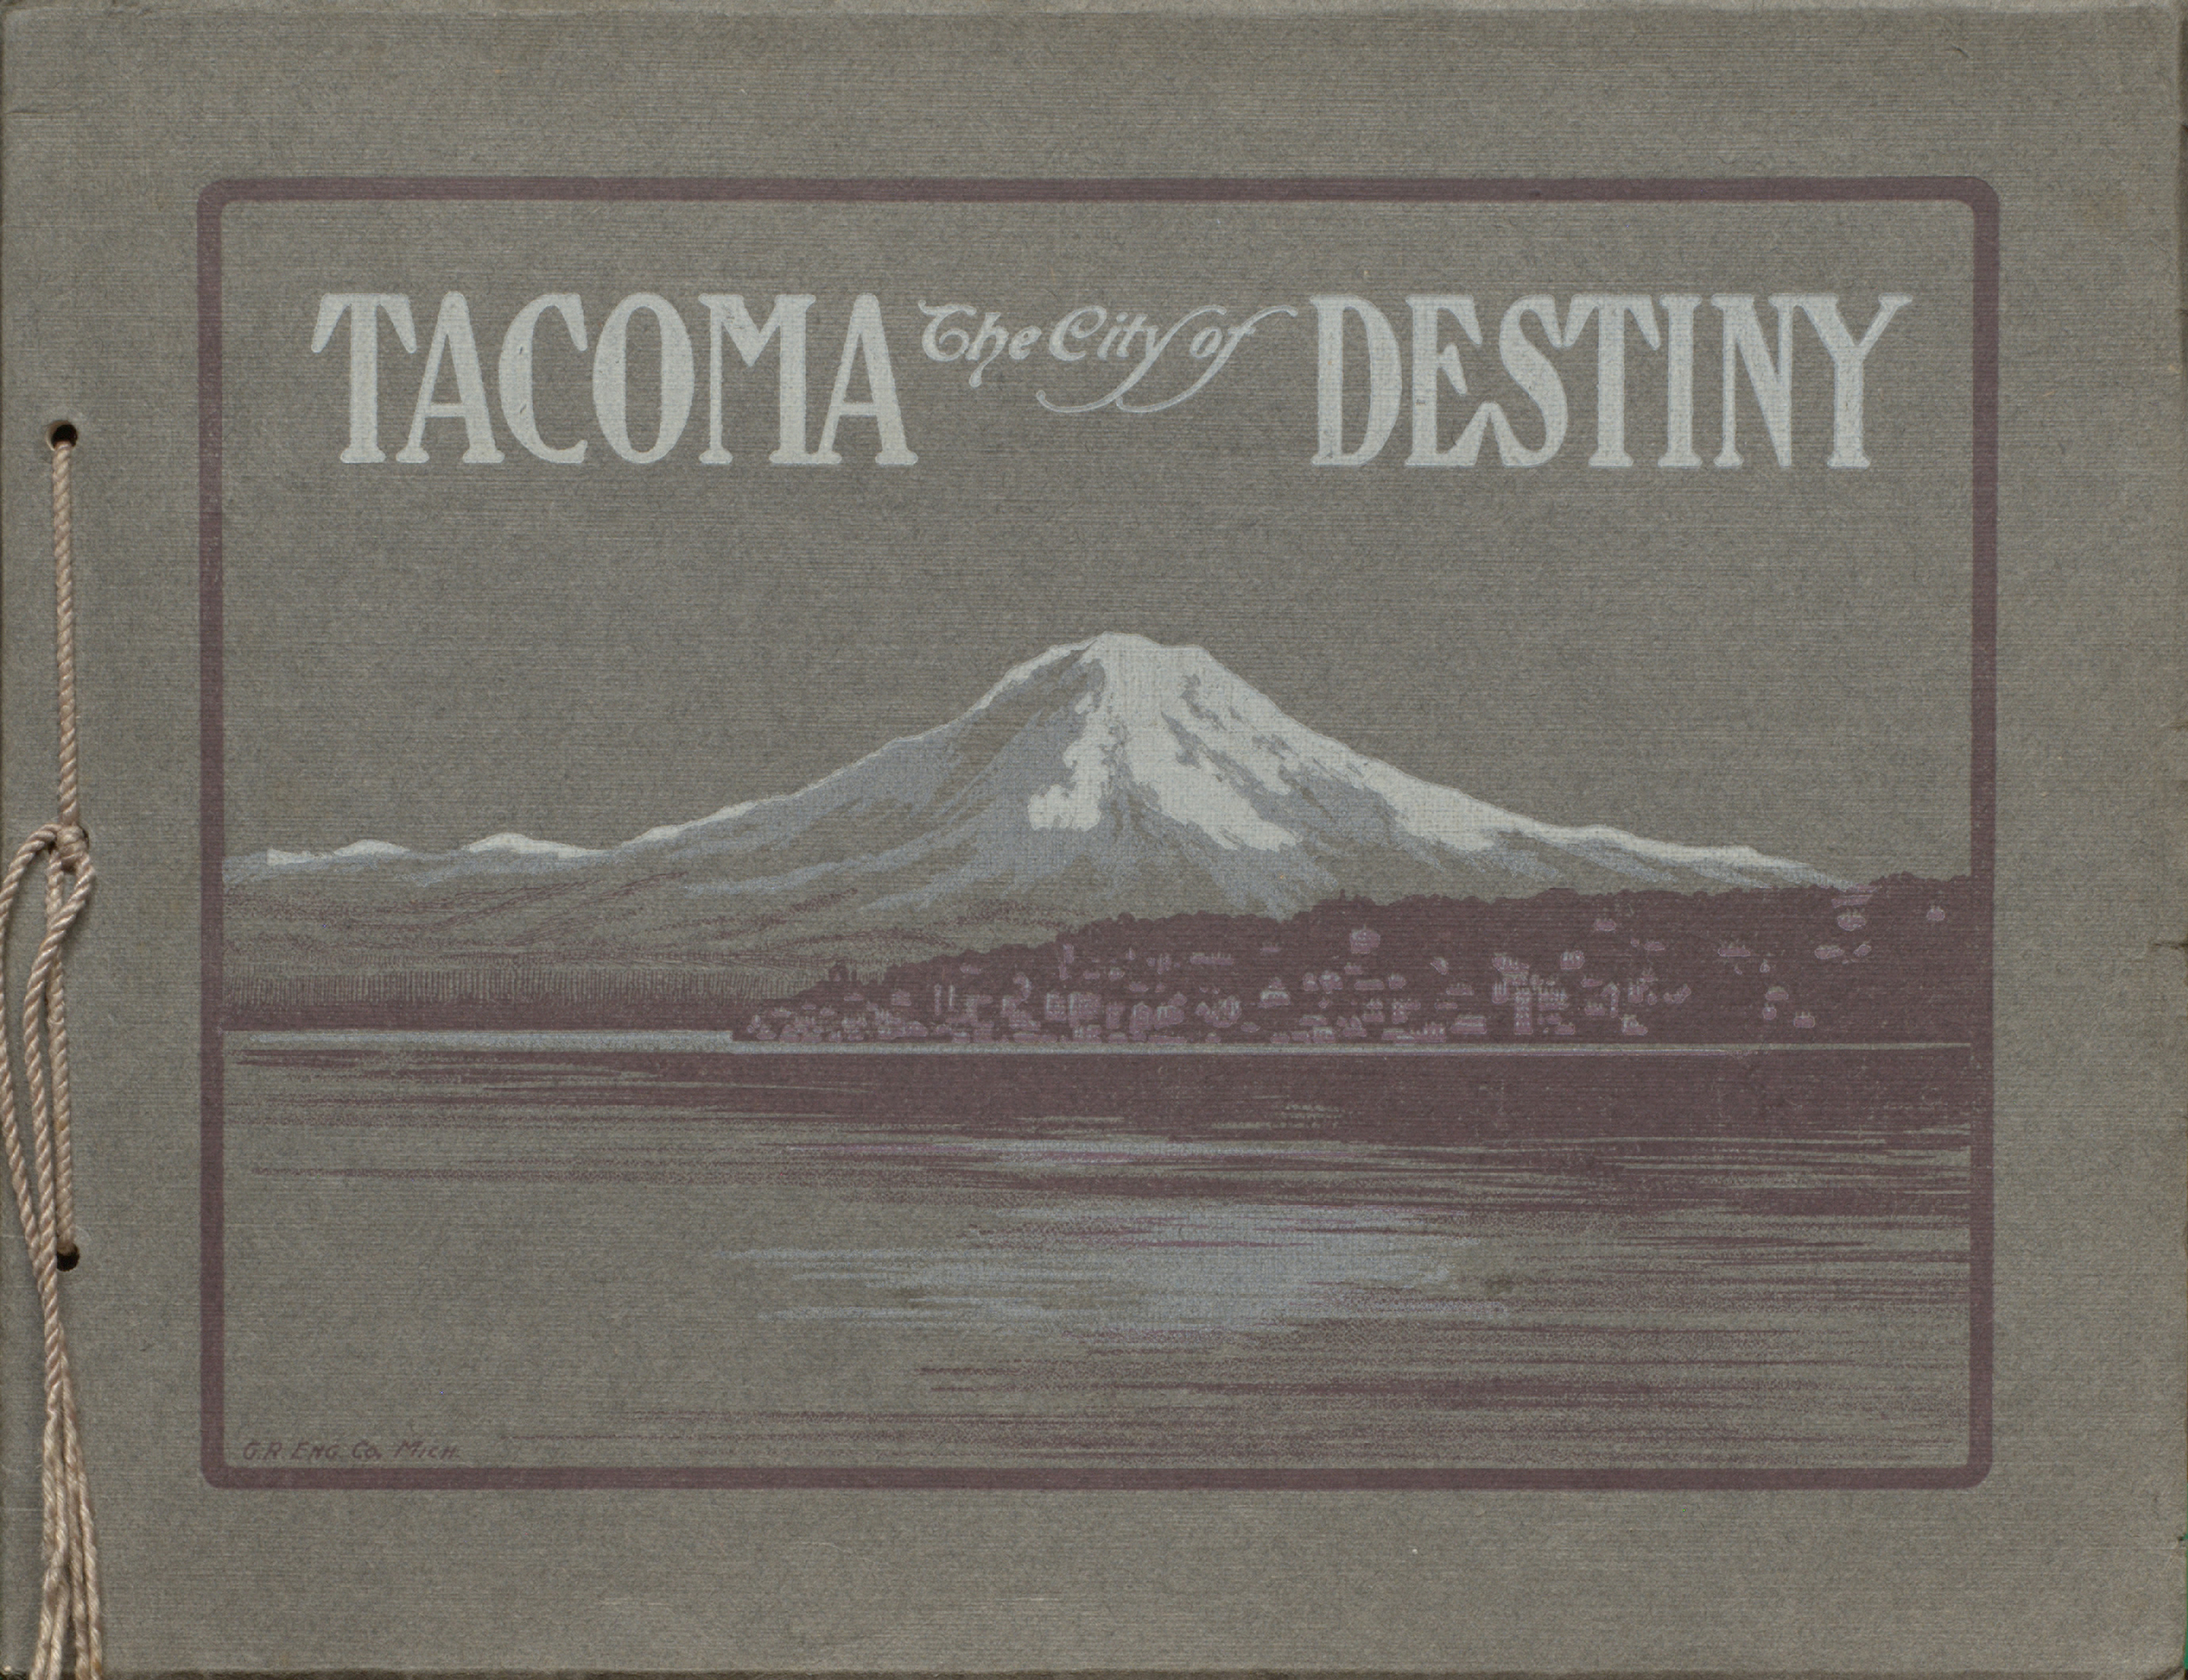 Tacoma, the City of Destiny : being views of the port of puget sound and illustrating its shipping, lumbering architecture, parks and giant mount Tacoma, in its varied moods. Cover.